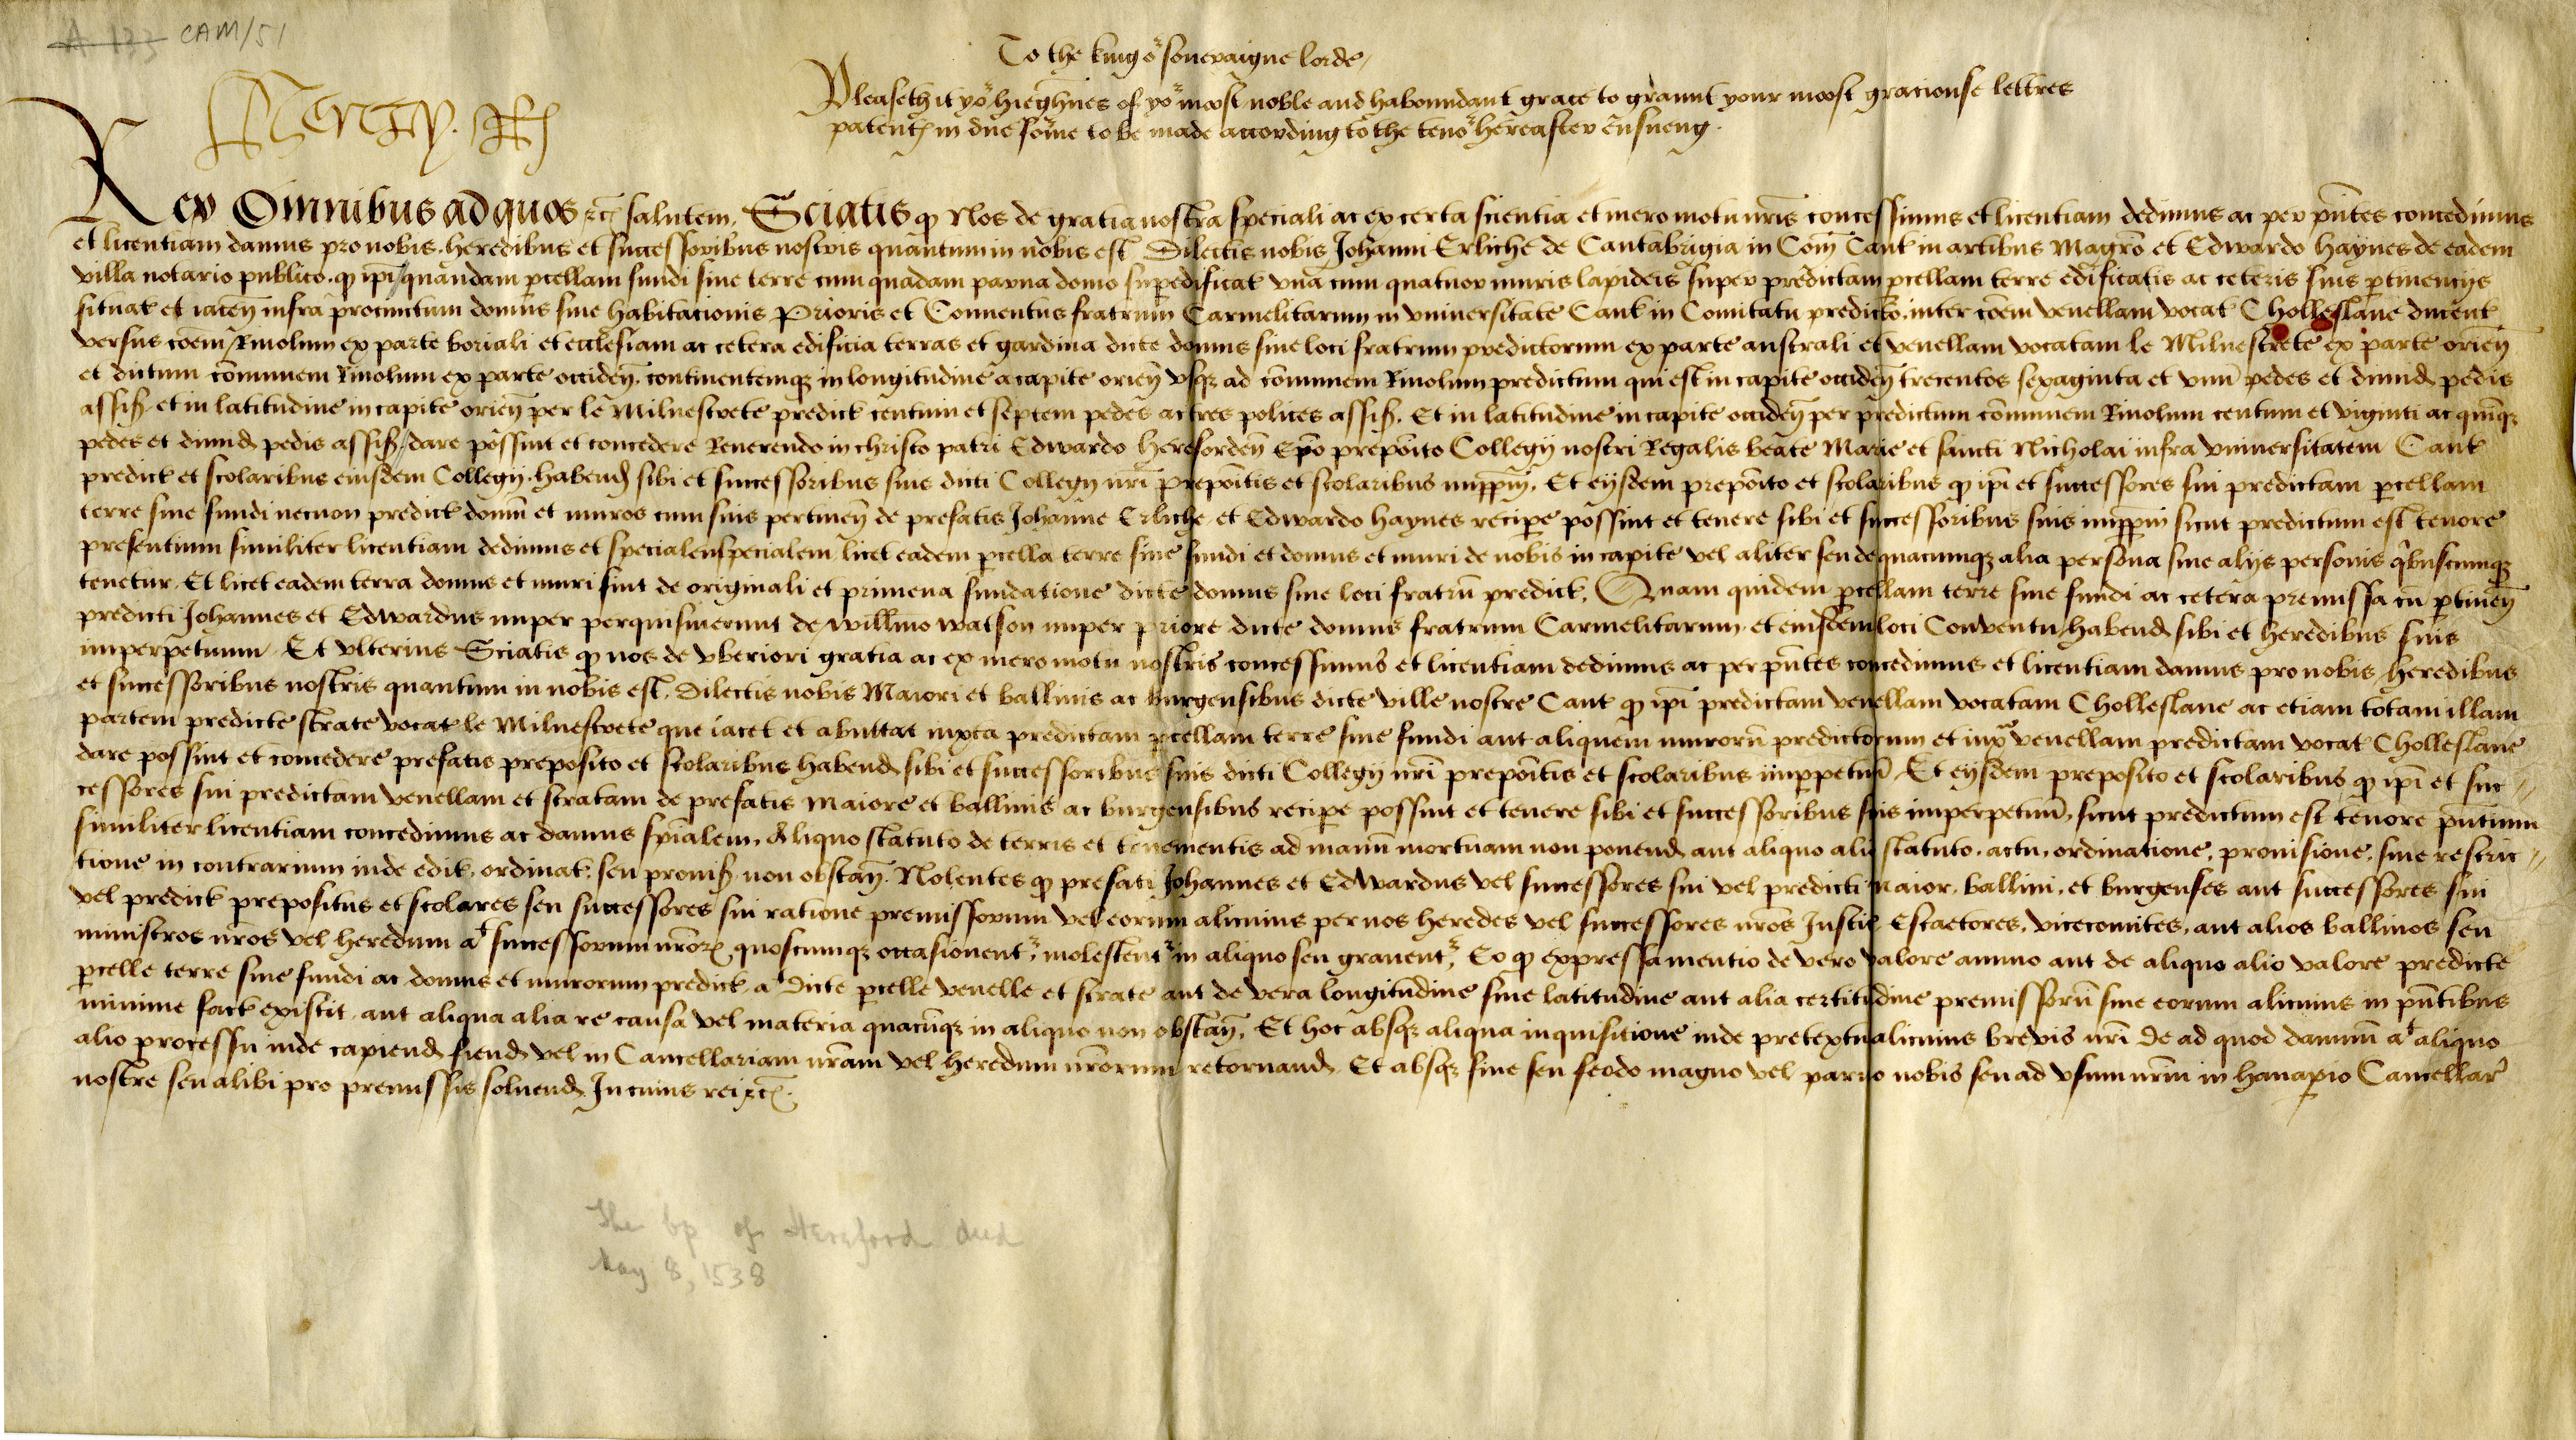 Authentic petition to King Henry VIII to grant letters patent, 1533-1538. (CAM/51, A.133)